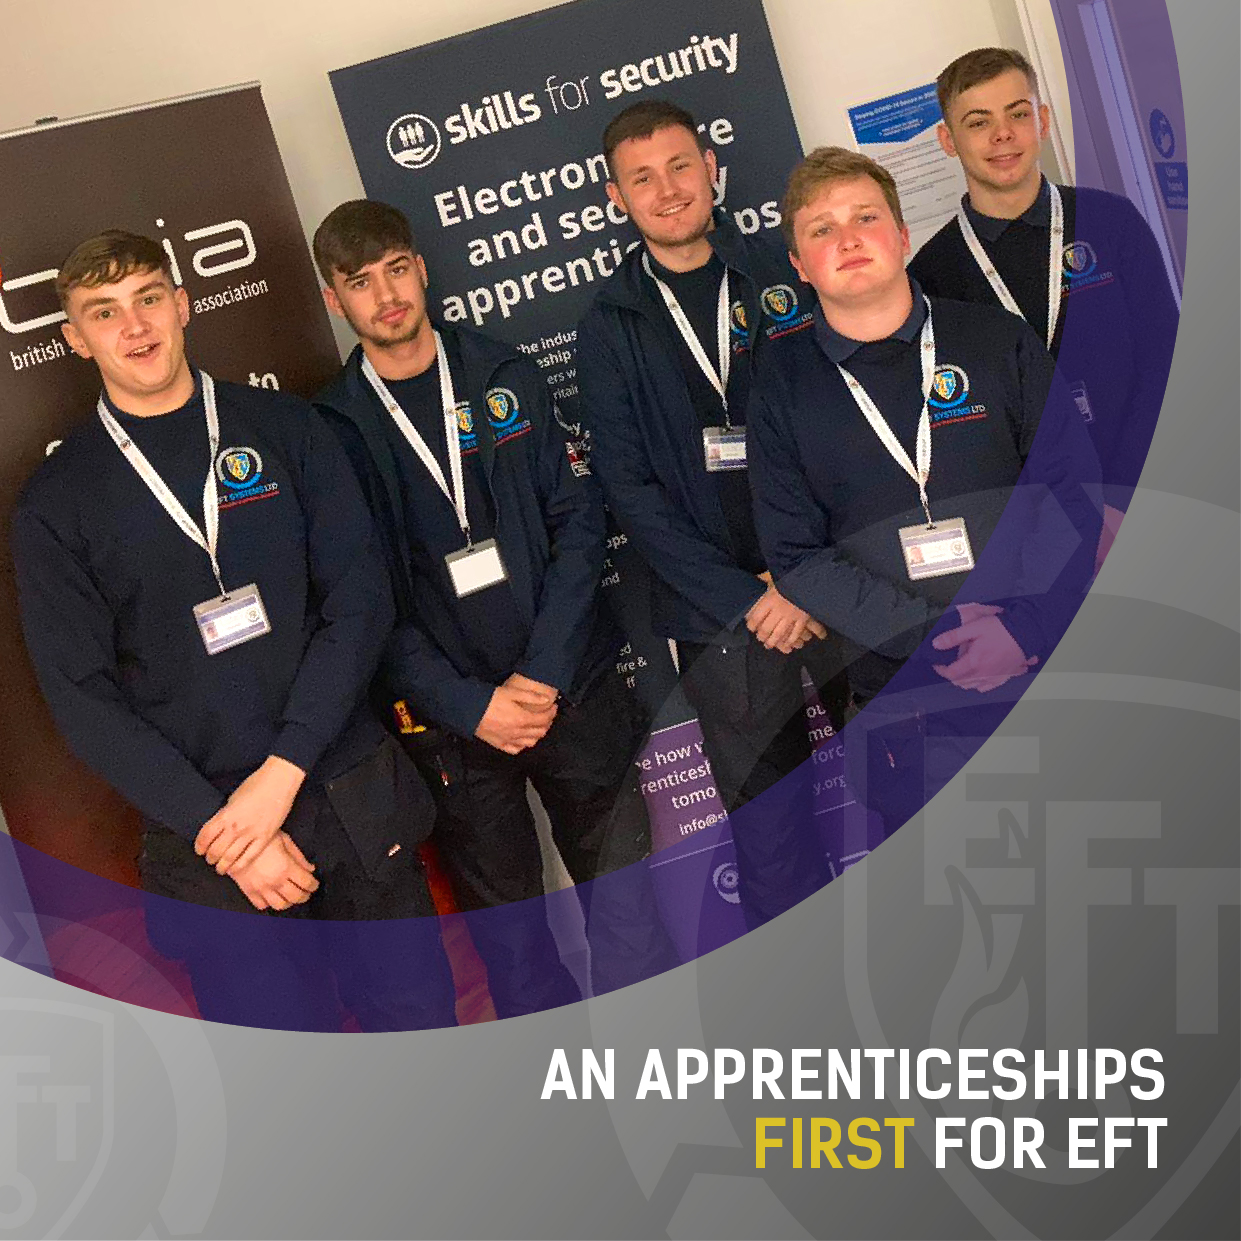 An Apprenticeships FIRST for EFT